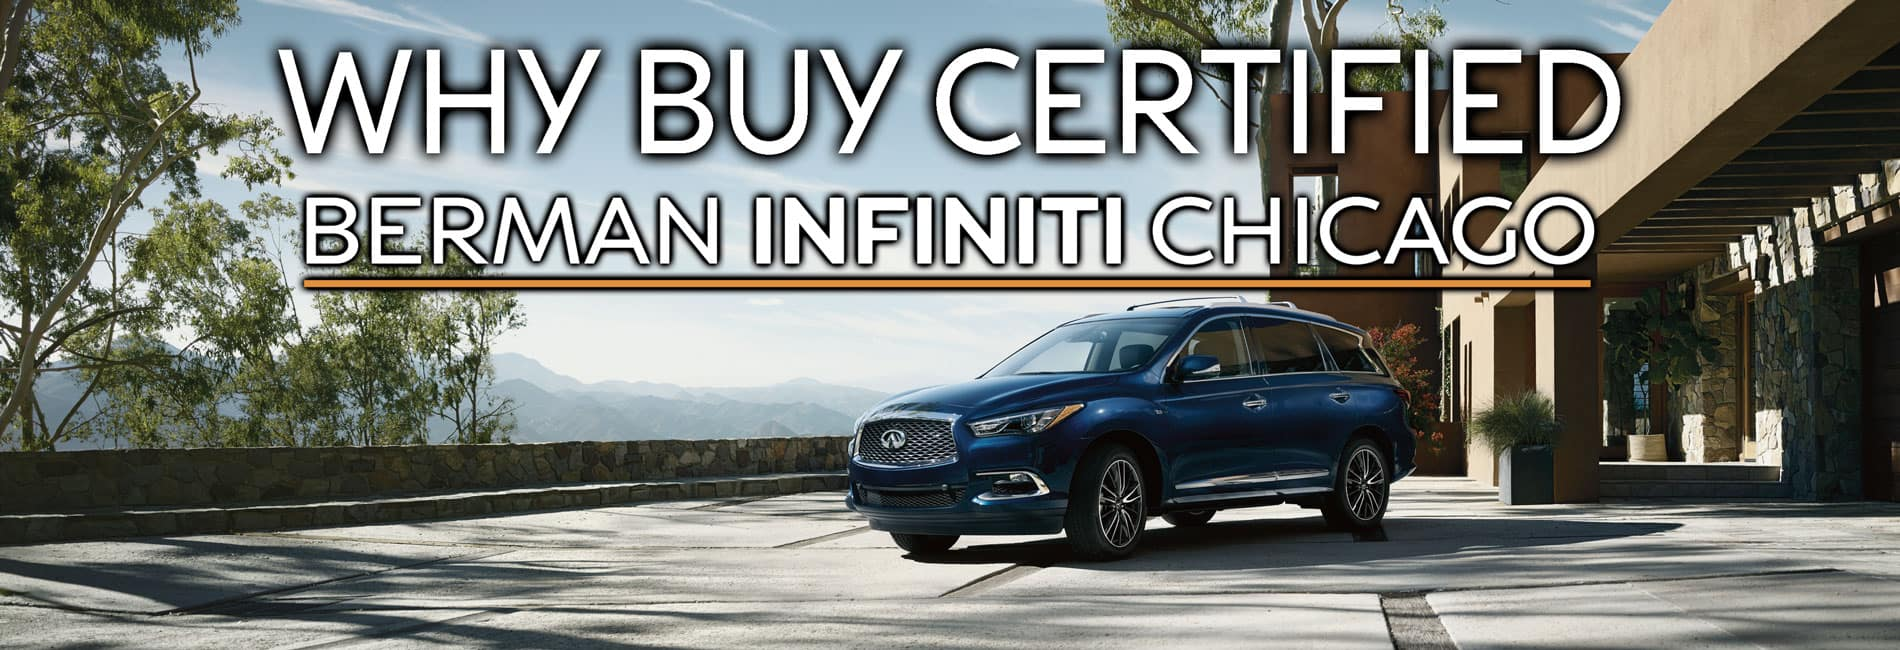 Why Buy Certified at Berman INFINITI Chicago